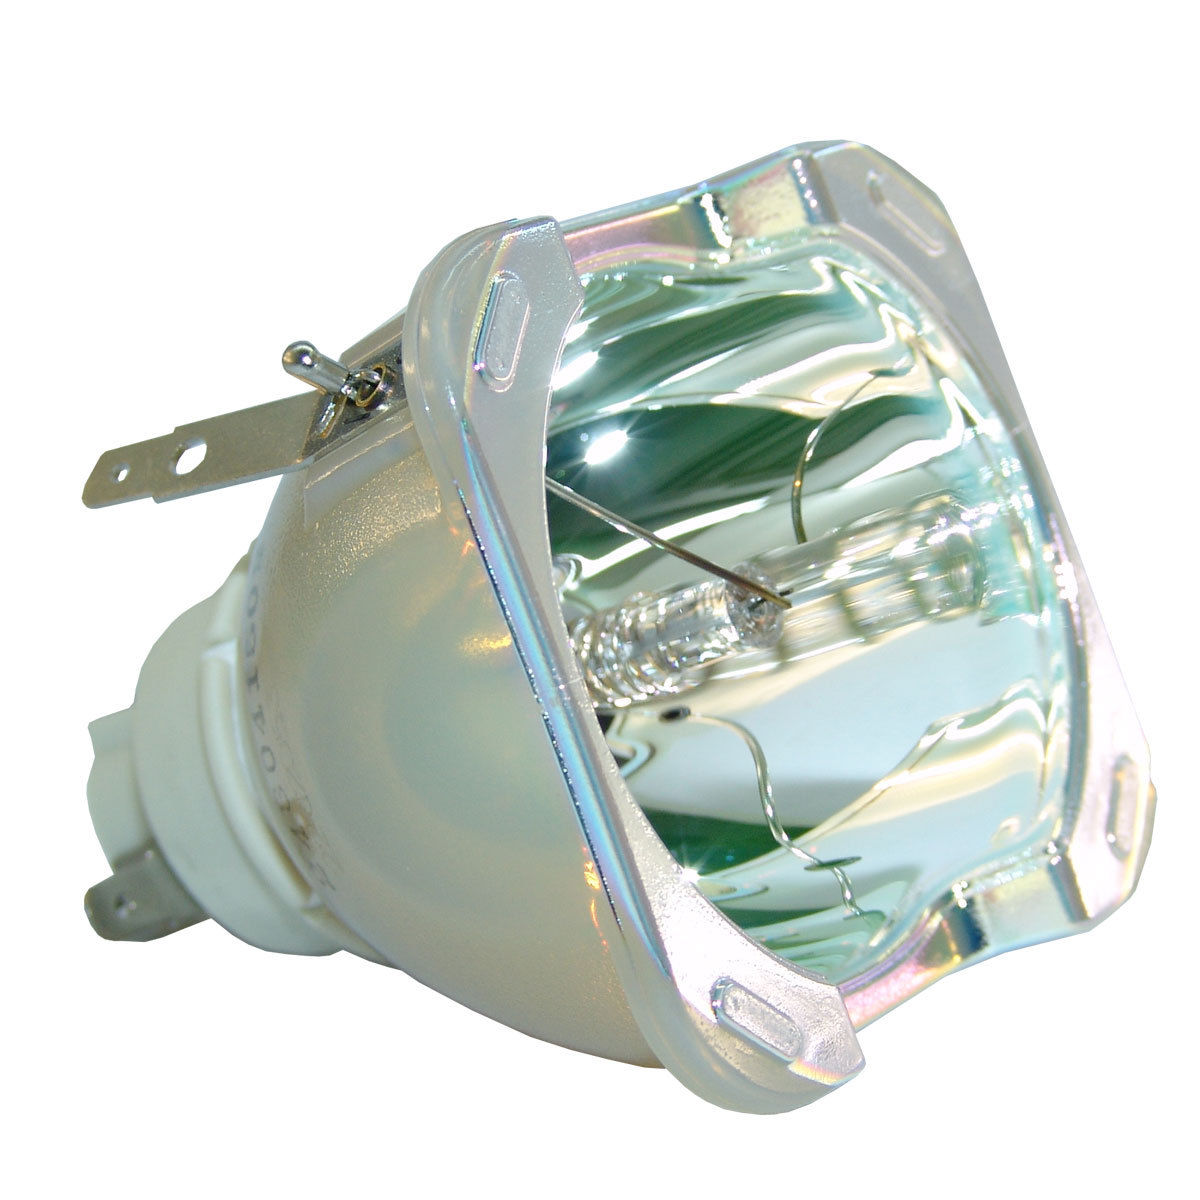 Compatible NP22LP NP-22LP 60003223 for NEC NP-PX750U NP-PH1000U NP-PX700W NP-PX800X NP-PX700WG NP-PX800XG Projector Bulb Lamp 1pc 5 inch automatic center punch hss spring loaded marking starting holes tool